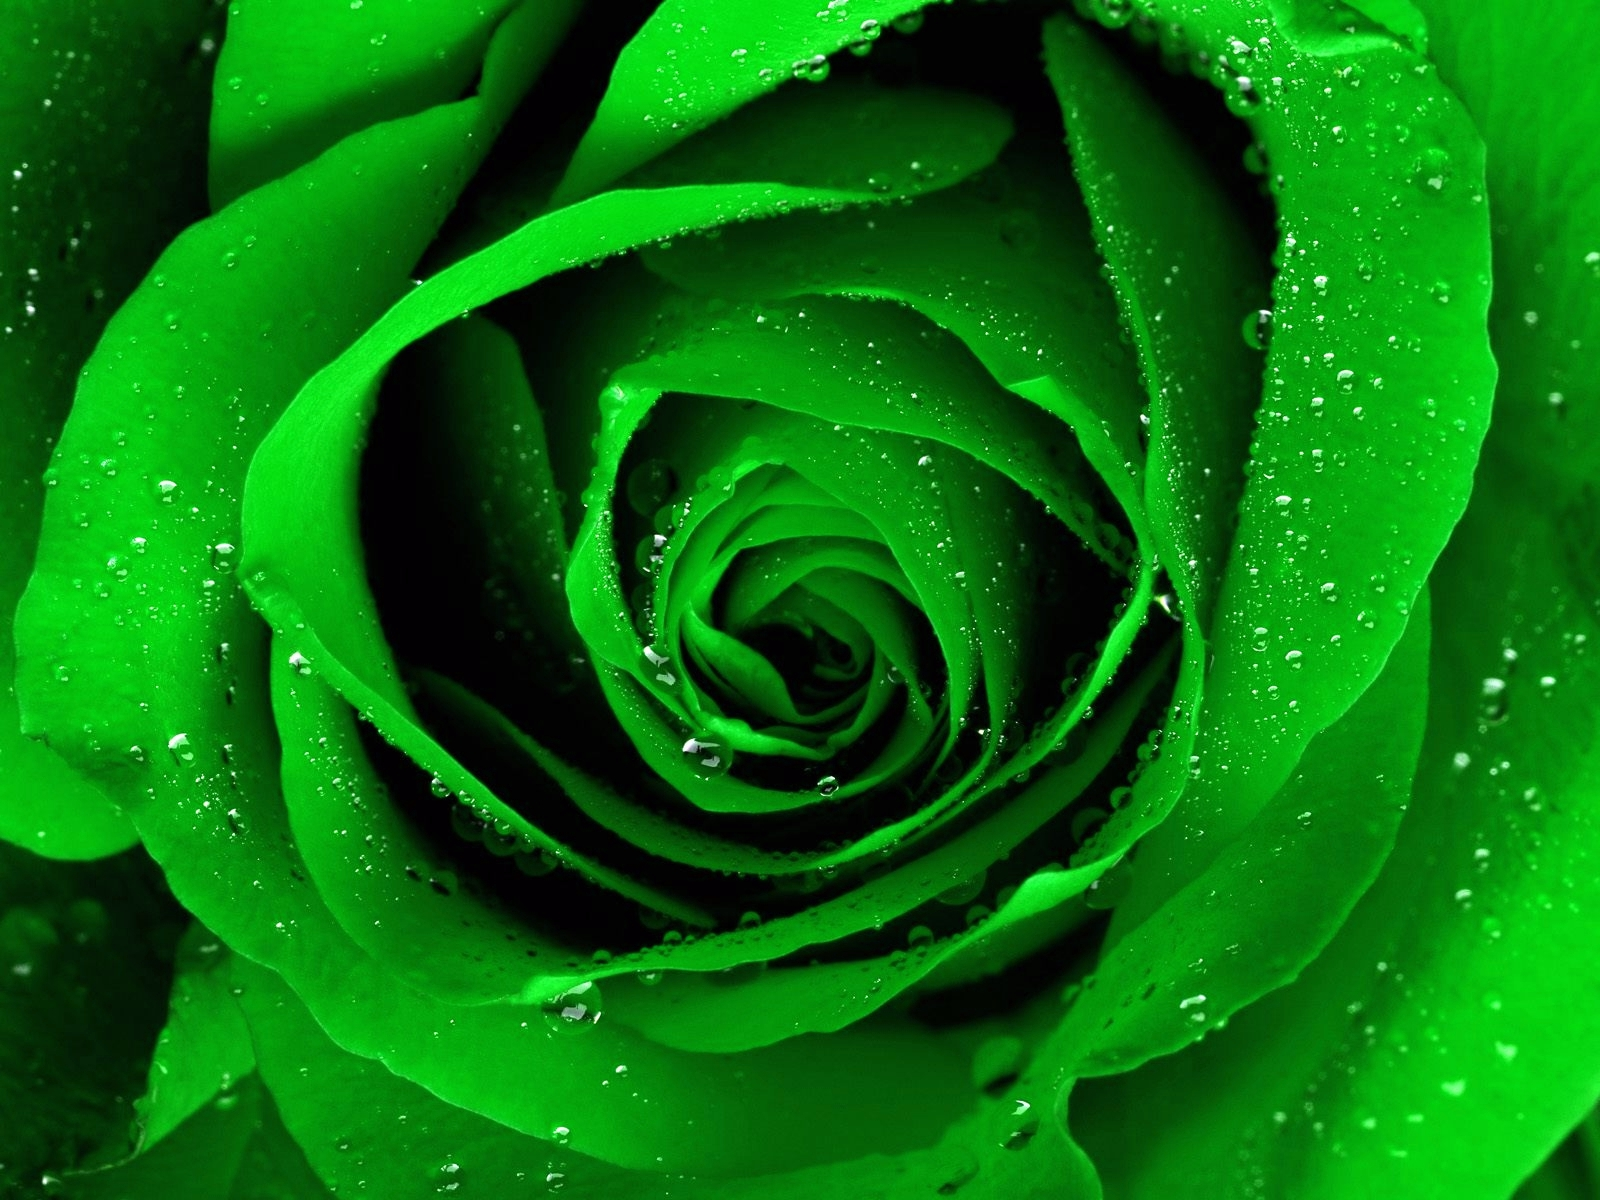 Rose Wallpaper: Green Rose HD Wallpaper Download Free